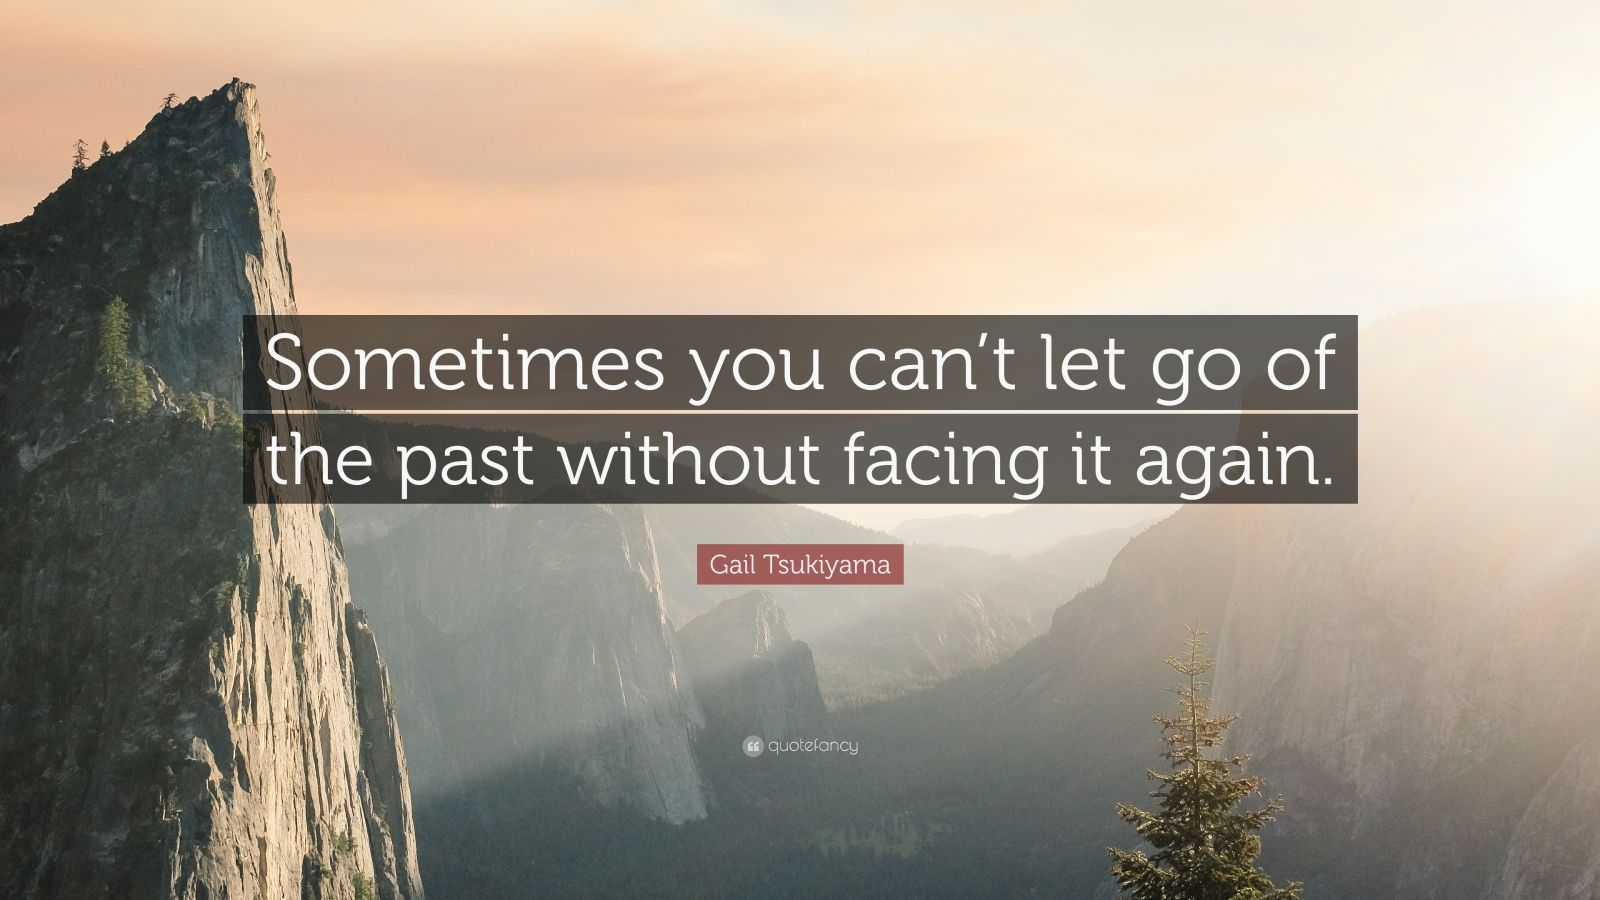 364625-Gail-Tsukiyama-Quote-Sometimes-you-can-t-let-go-of-the-past